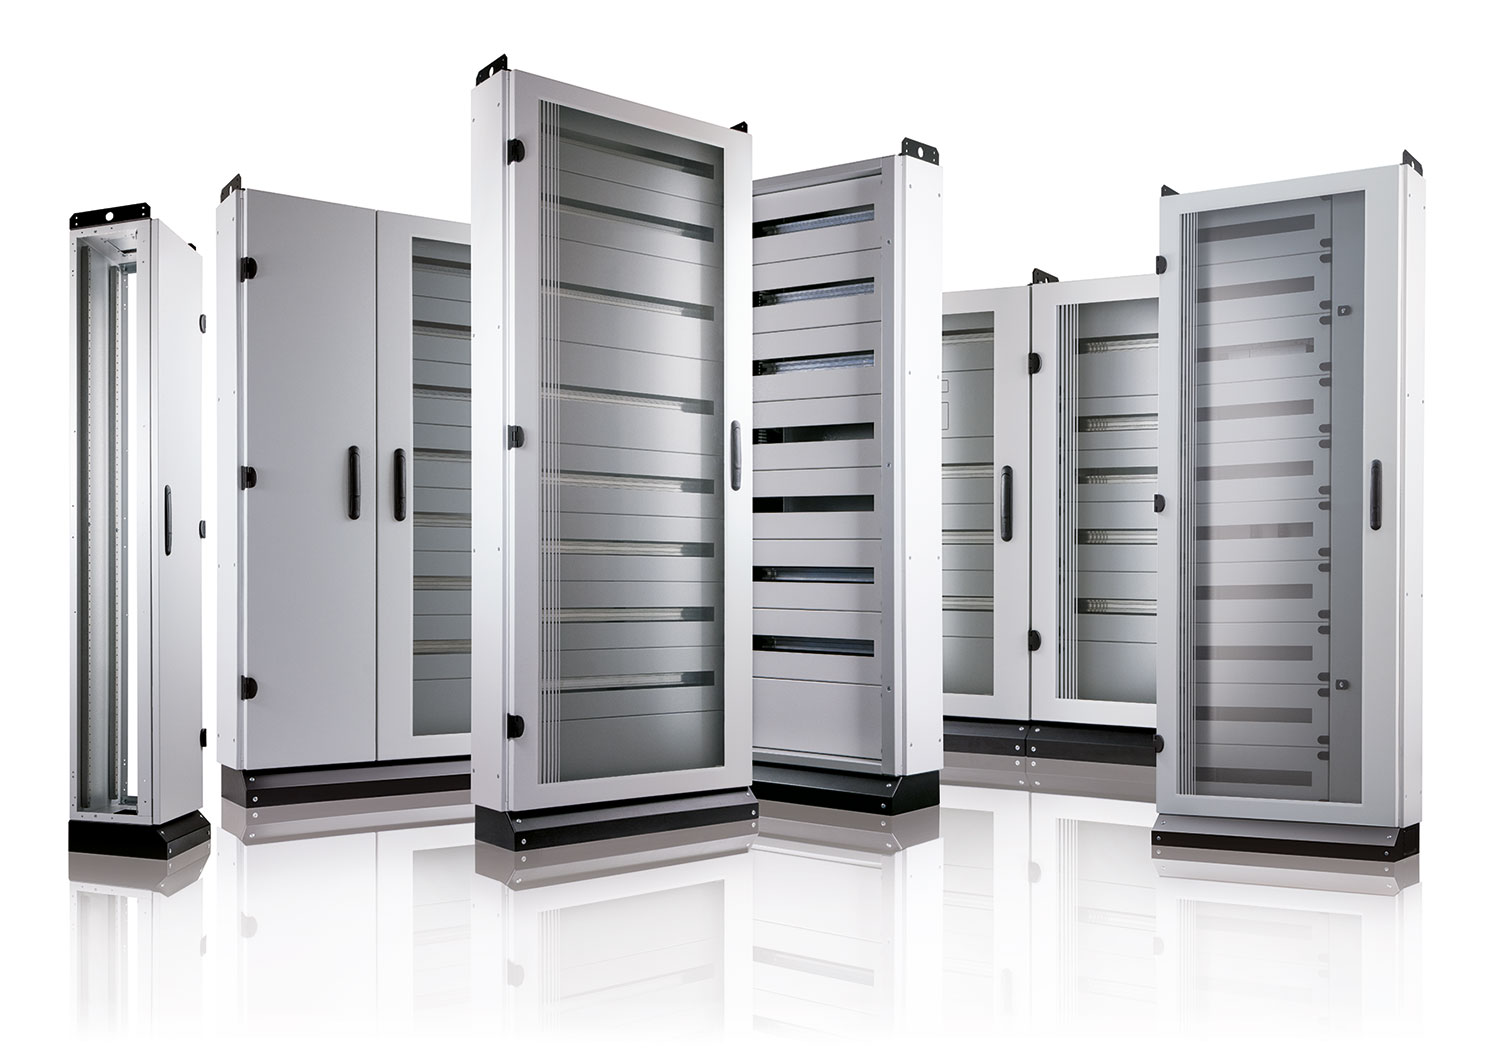 Electrical cabinets for energy distribution, industrial automation ...